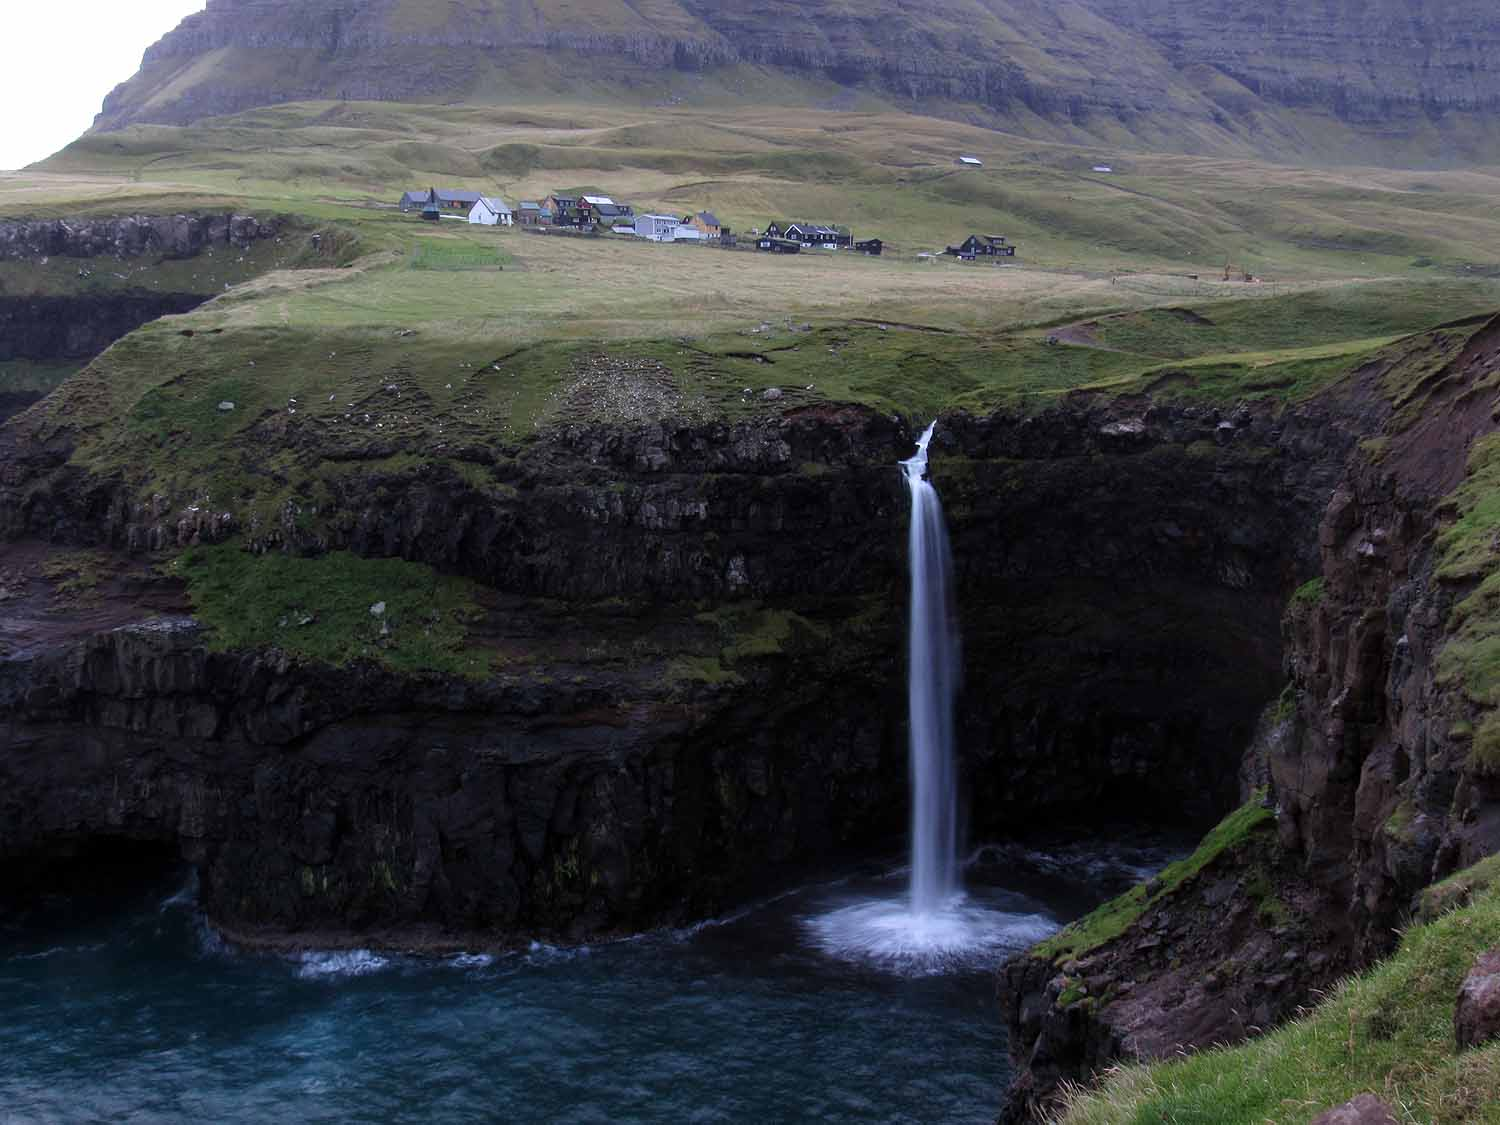 denmark-faroe-islands-vagar-gasaladur-mulafossur-waterfall-soft-water - Copy - Copy.JPG